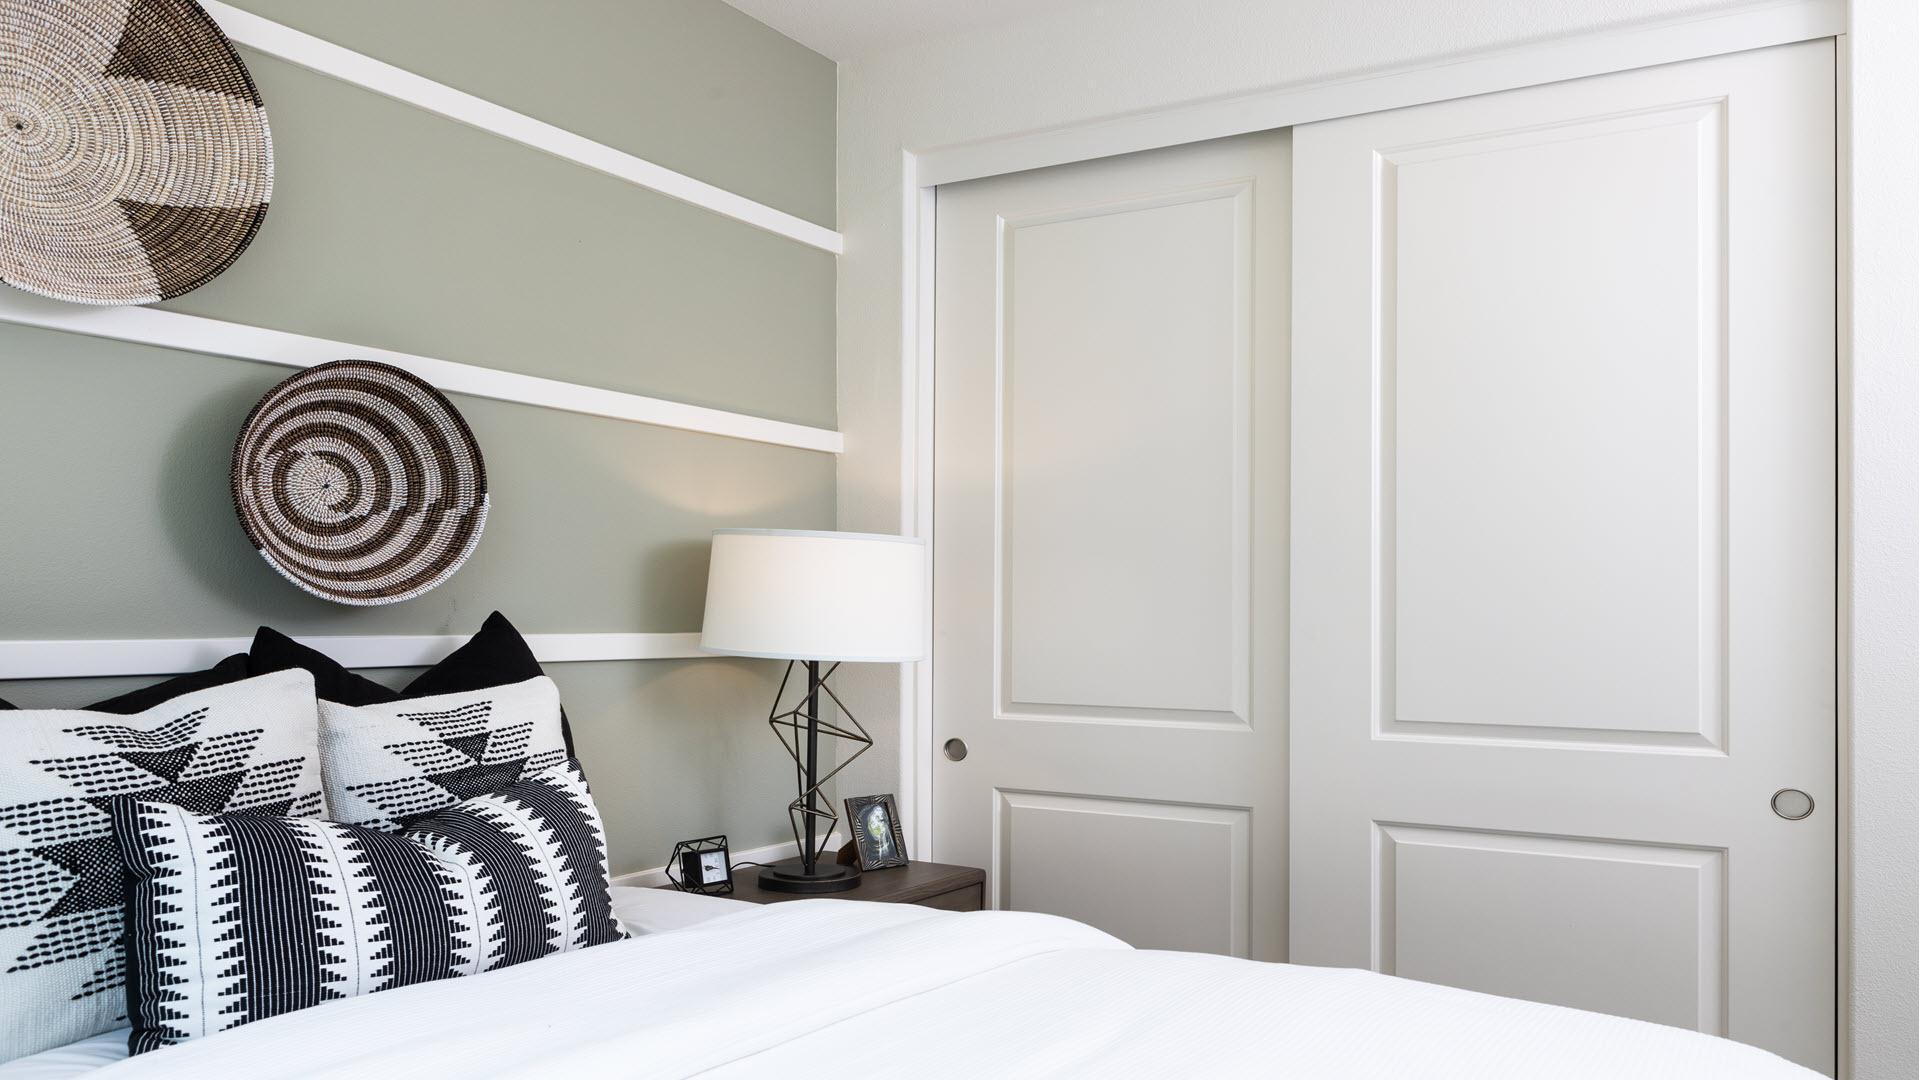 Bedroom featured in the Plan 5A-Paired By Warmington Residential in Santa Barbara, CA